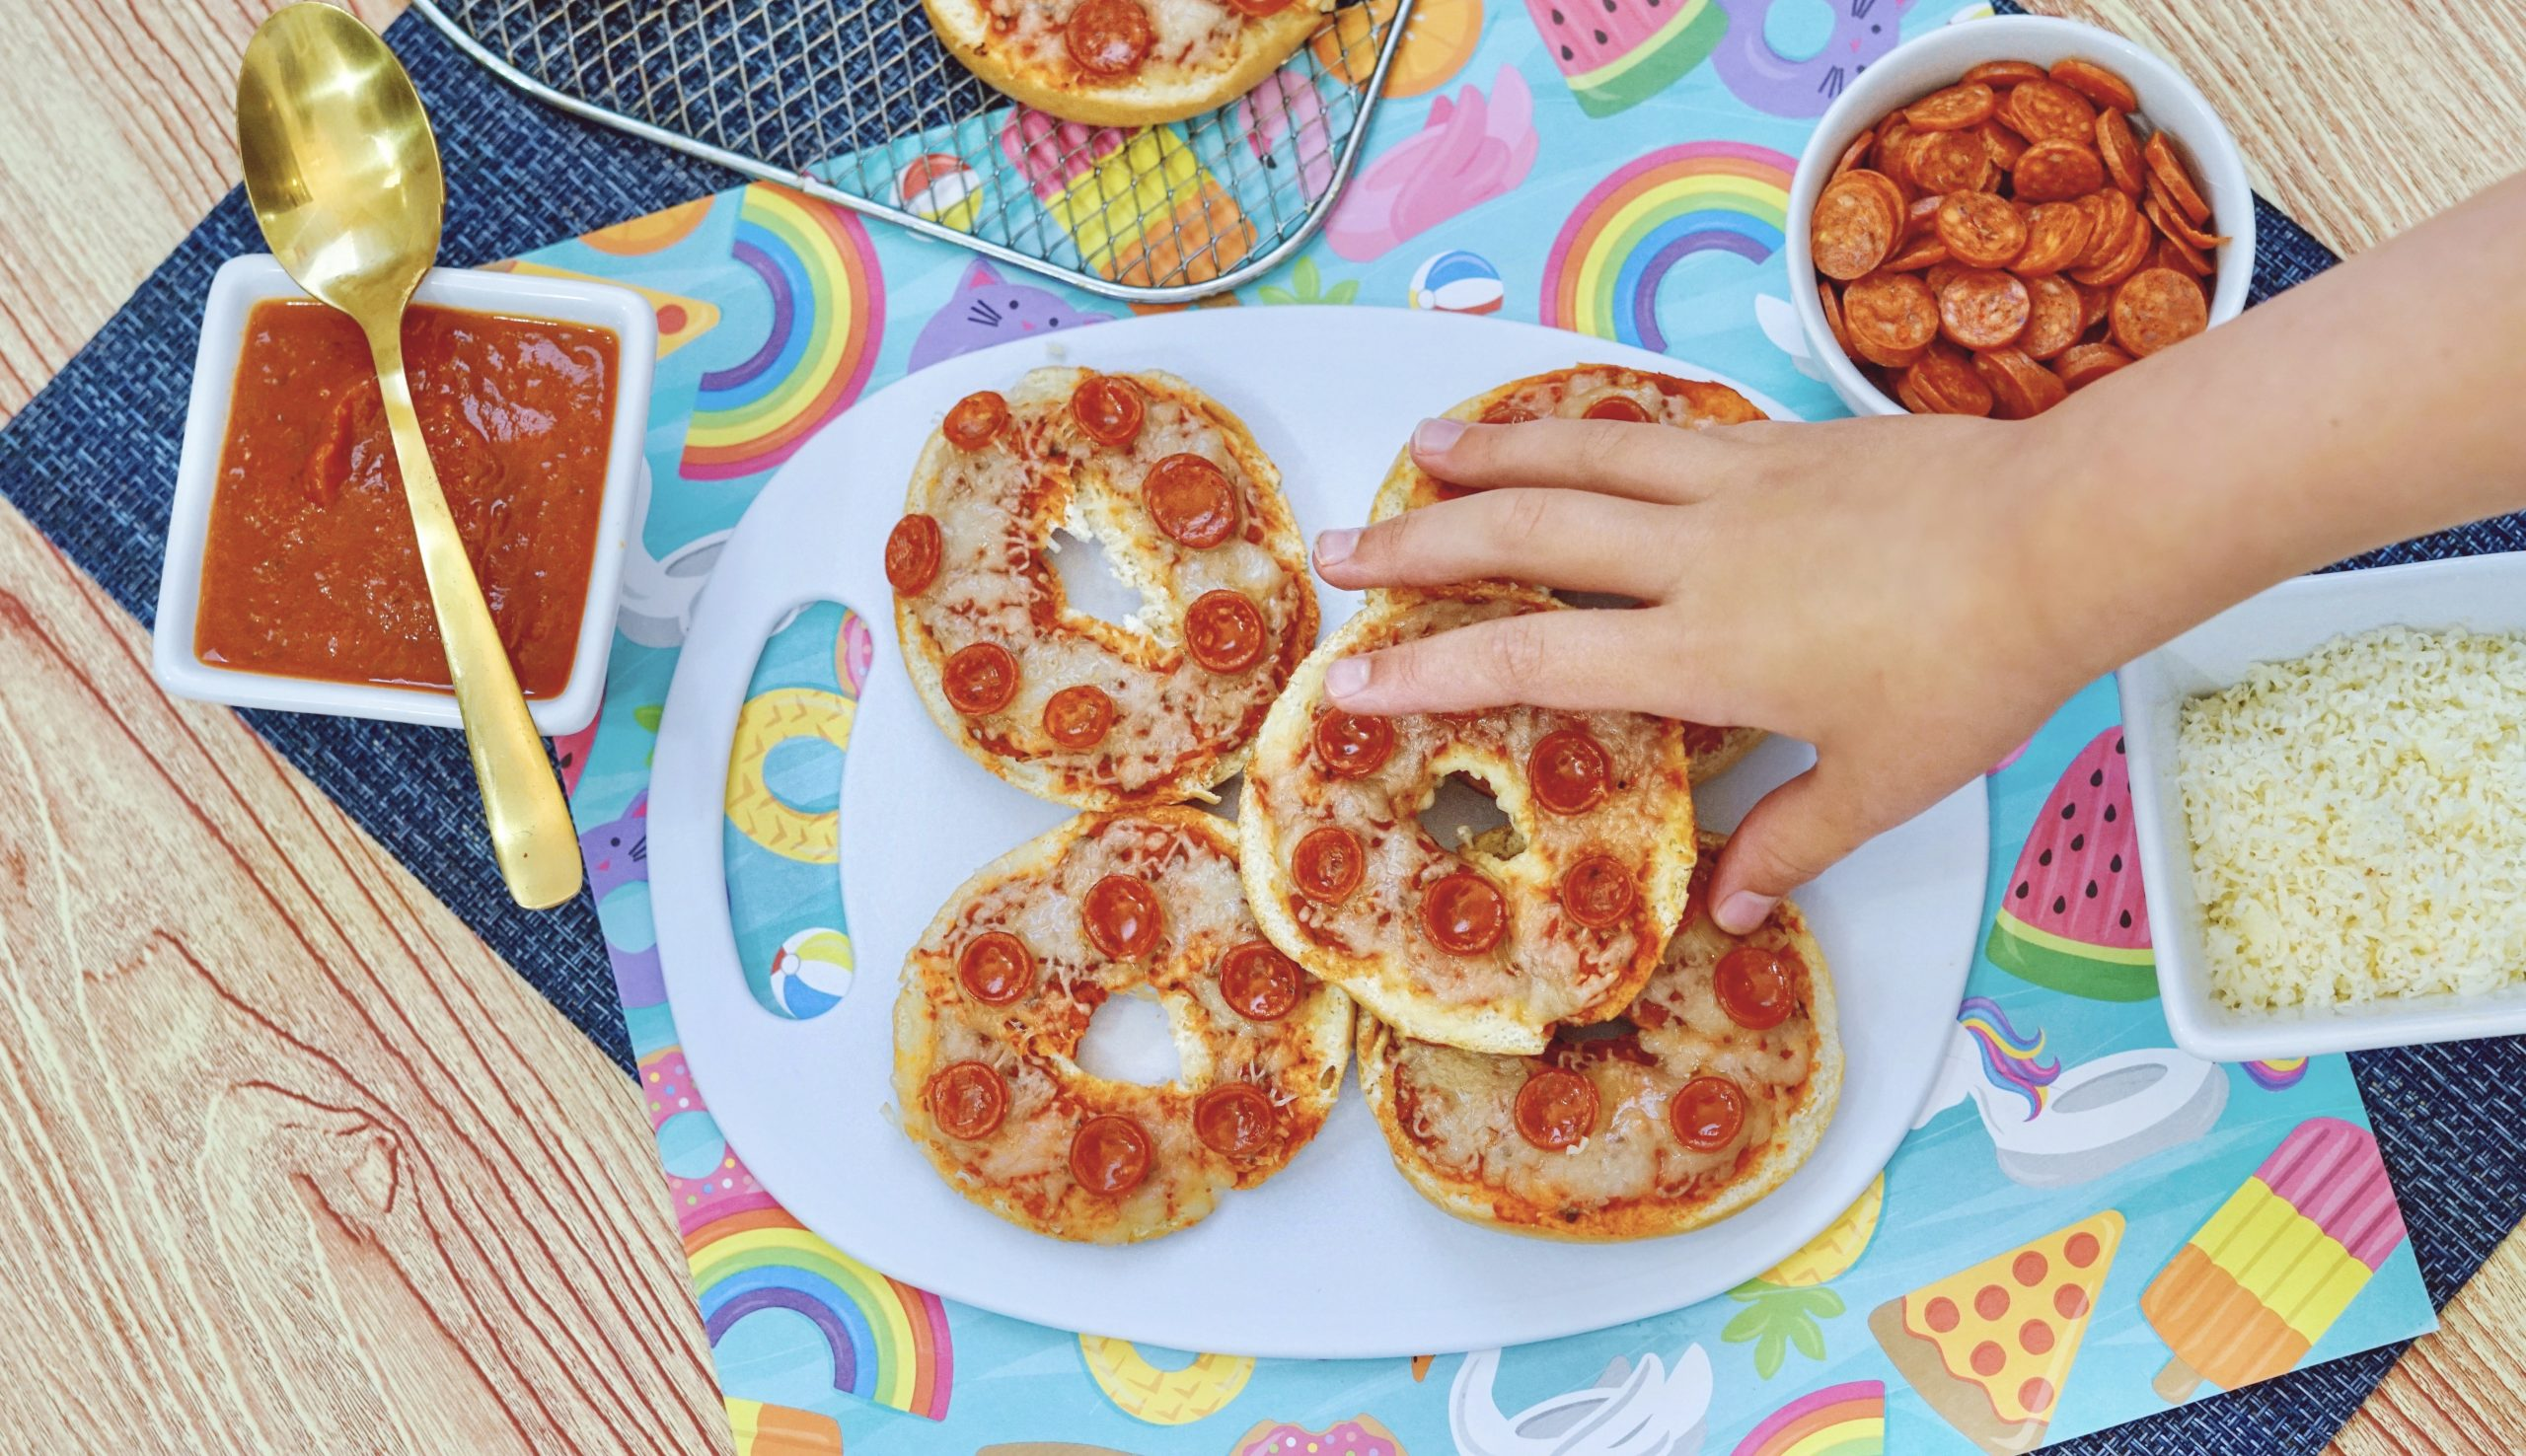 A childs hand grabbing a pepperoni bagel bite in the foreground. 3 Bagel bites on a white plate in the background, with tomato sauce in a bowl with a spoon. Mozzarella cheese in a bowl. An Air fryer rack with three more bagel bites sitting next to the plate.